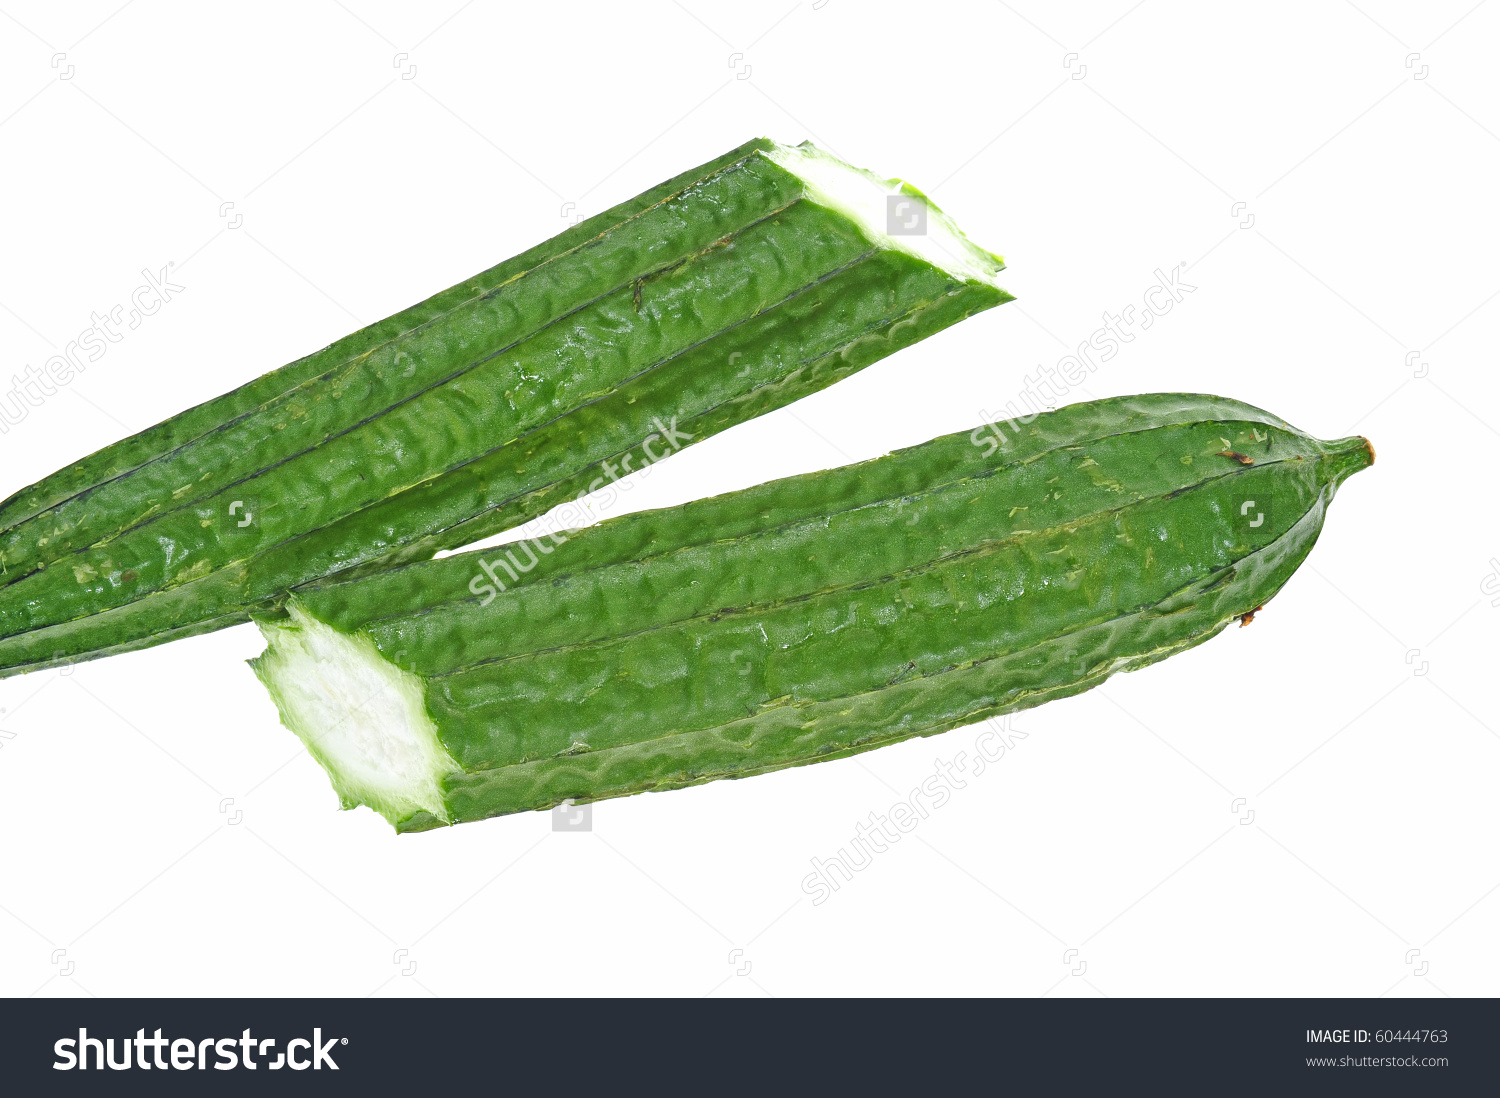 Angled Luffa ,Vegetable On White Background Stock Photo 60444763.